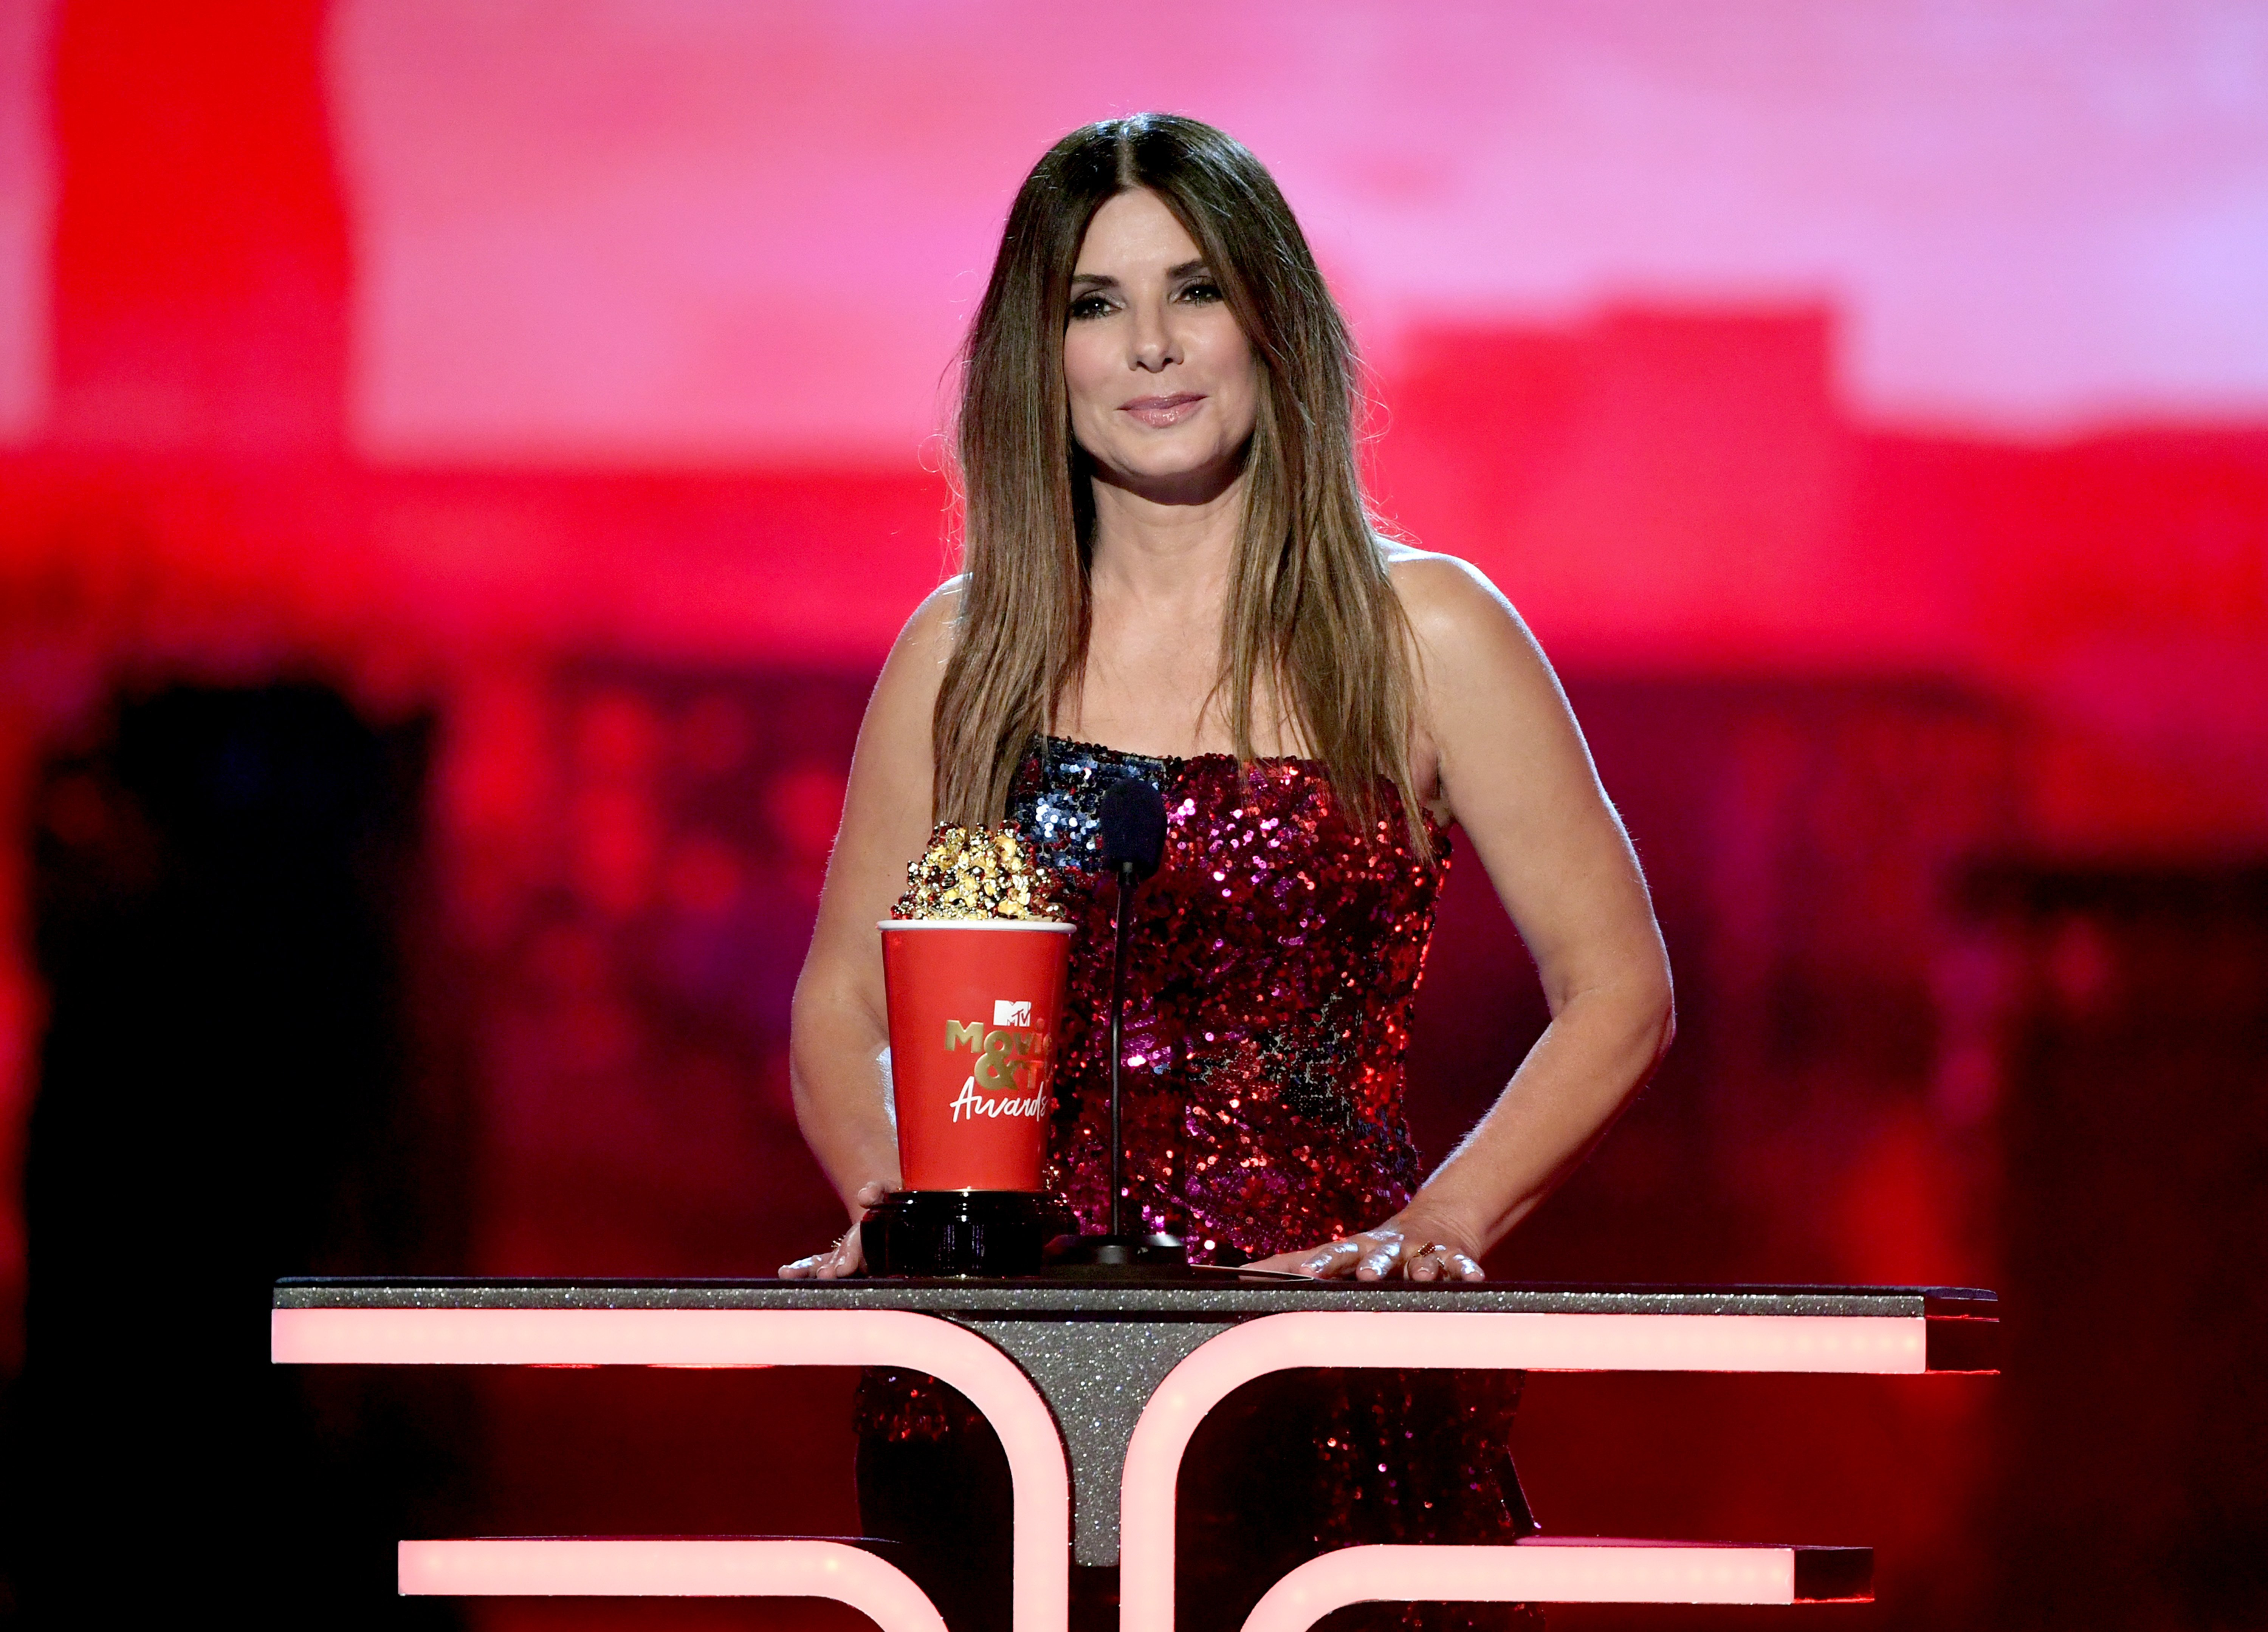 Sandra Bullock receives an award at the 2019 MTV Movie and TV Awards in California | Photo: Getty Images